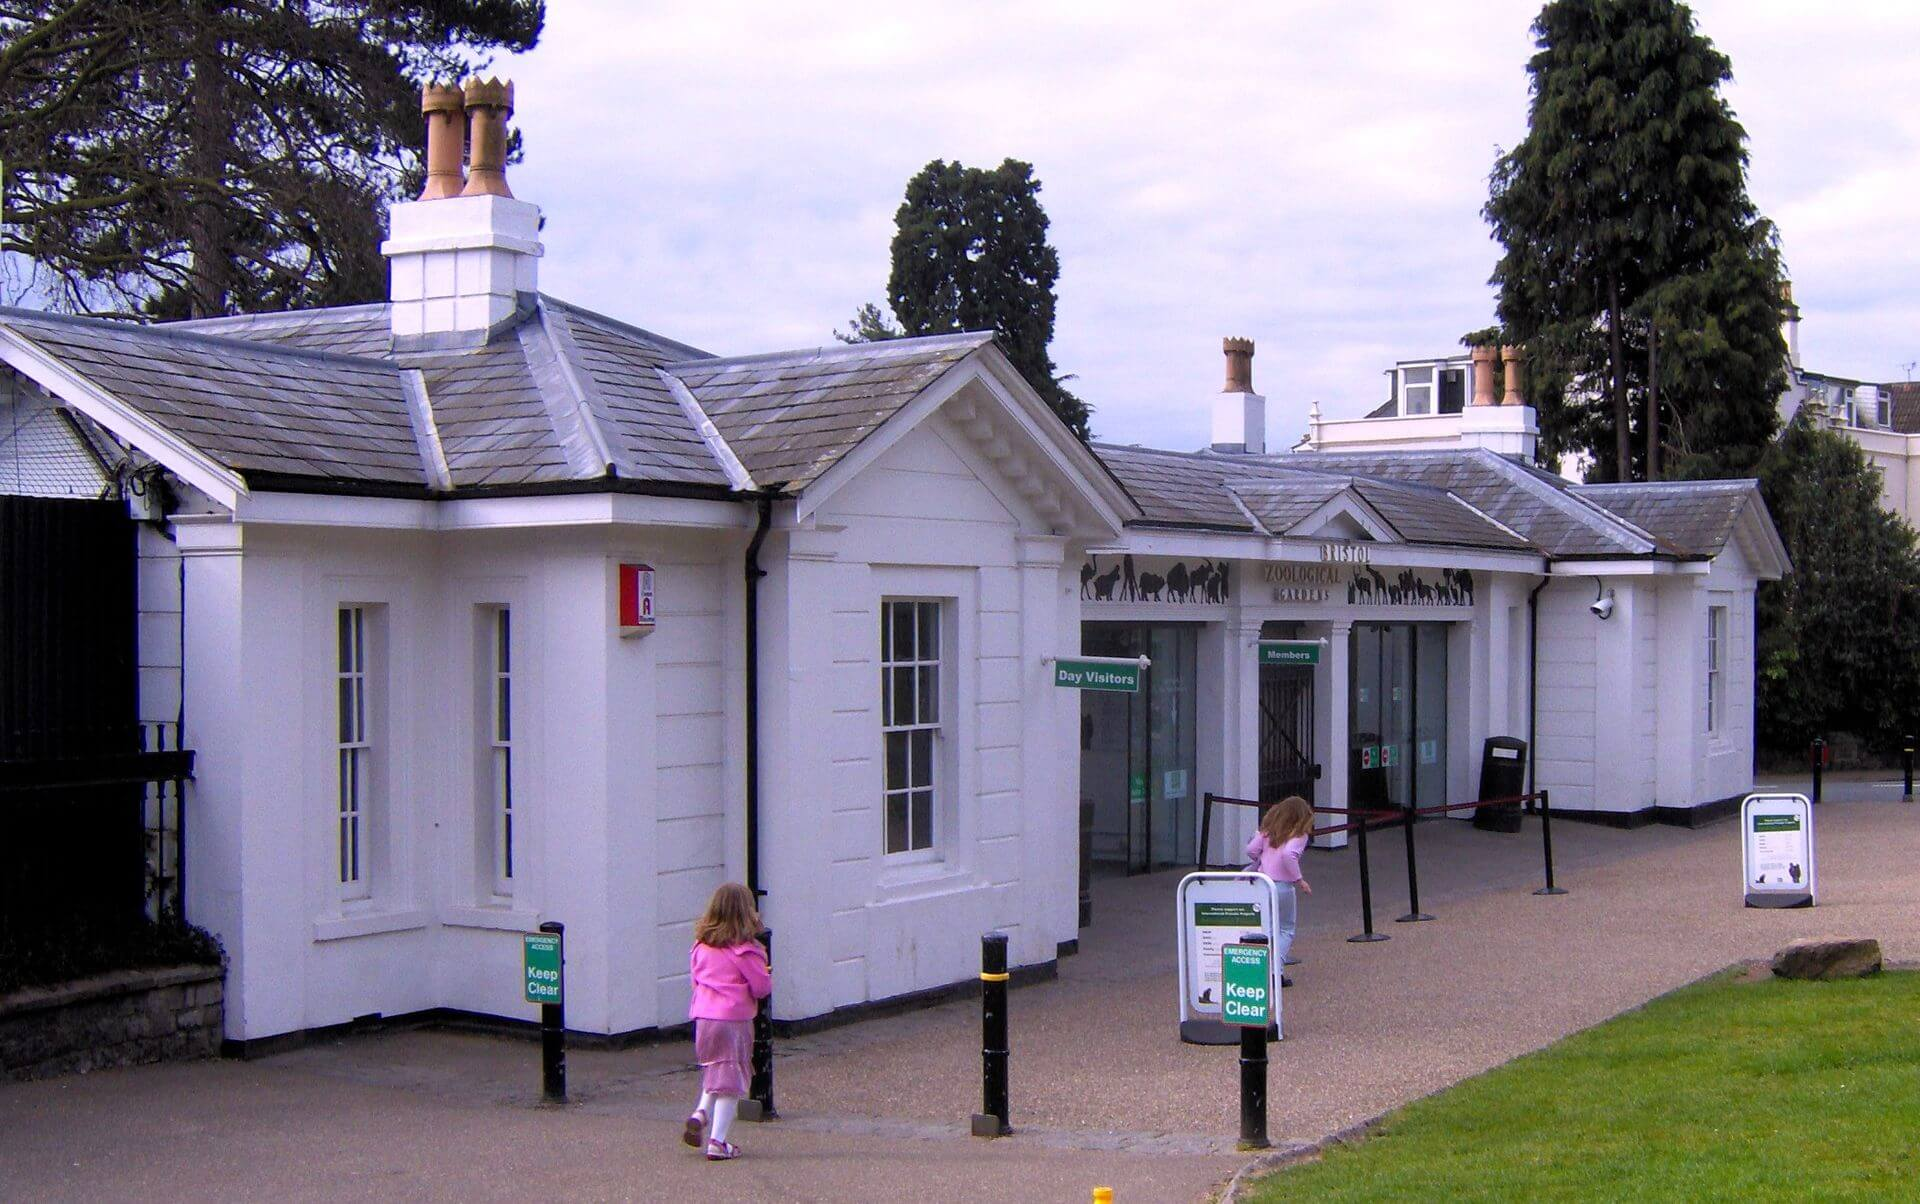 The main entrance of Bristol Zoo Gardens.